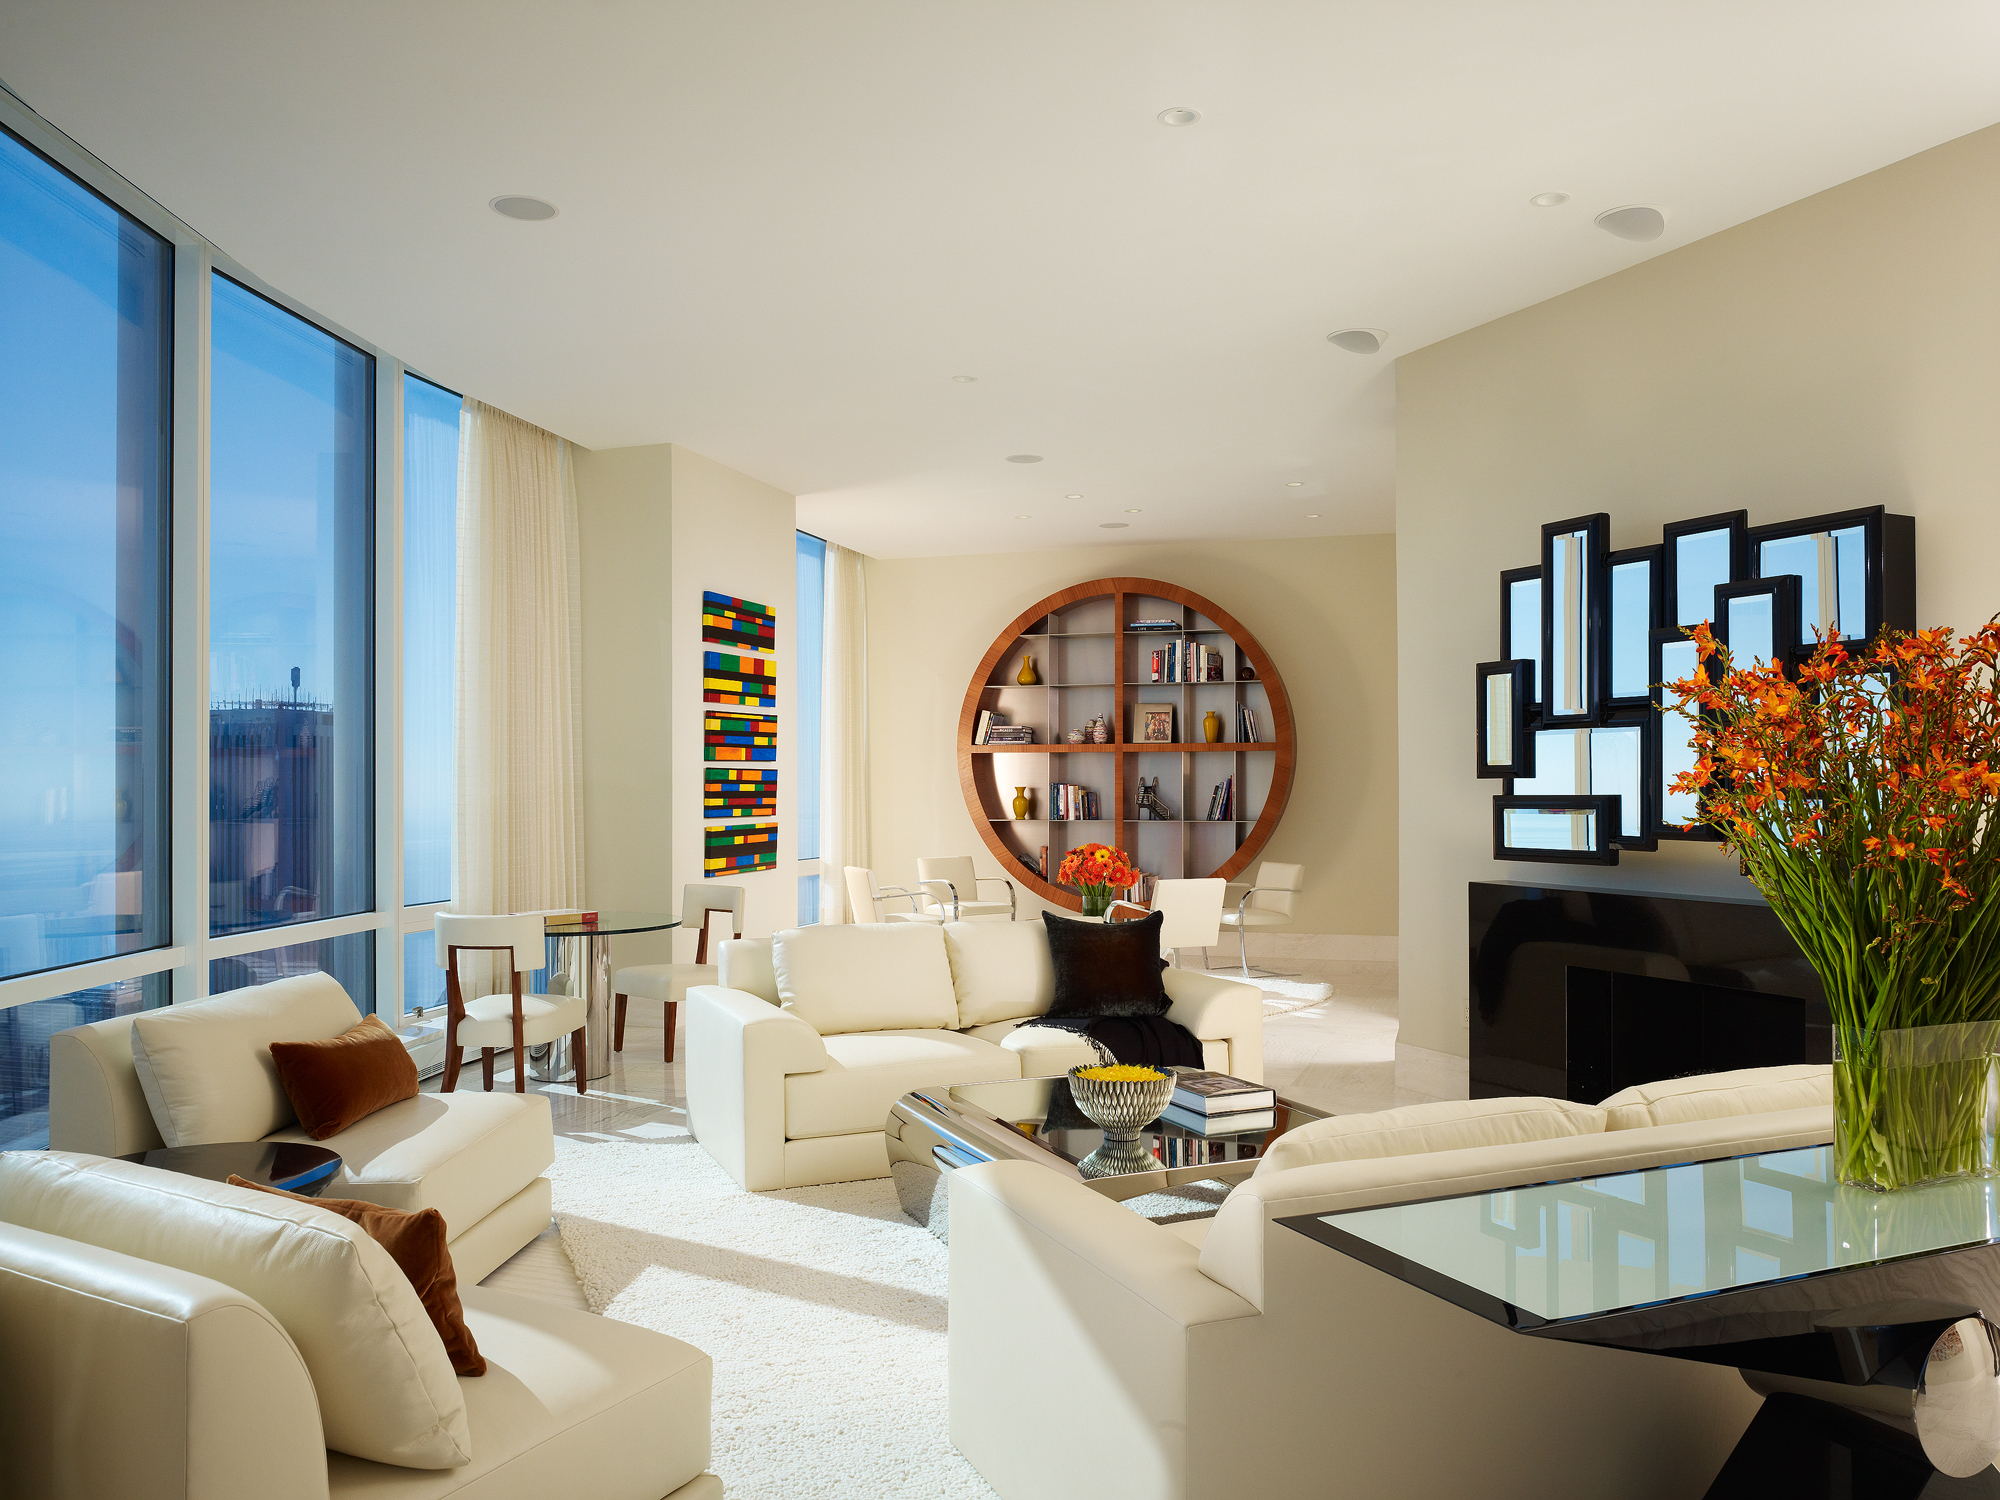 Trump Tower Residence  John Robert Wiltgen Design   Chicago, IL      Return to Projects